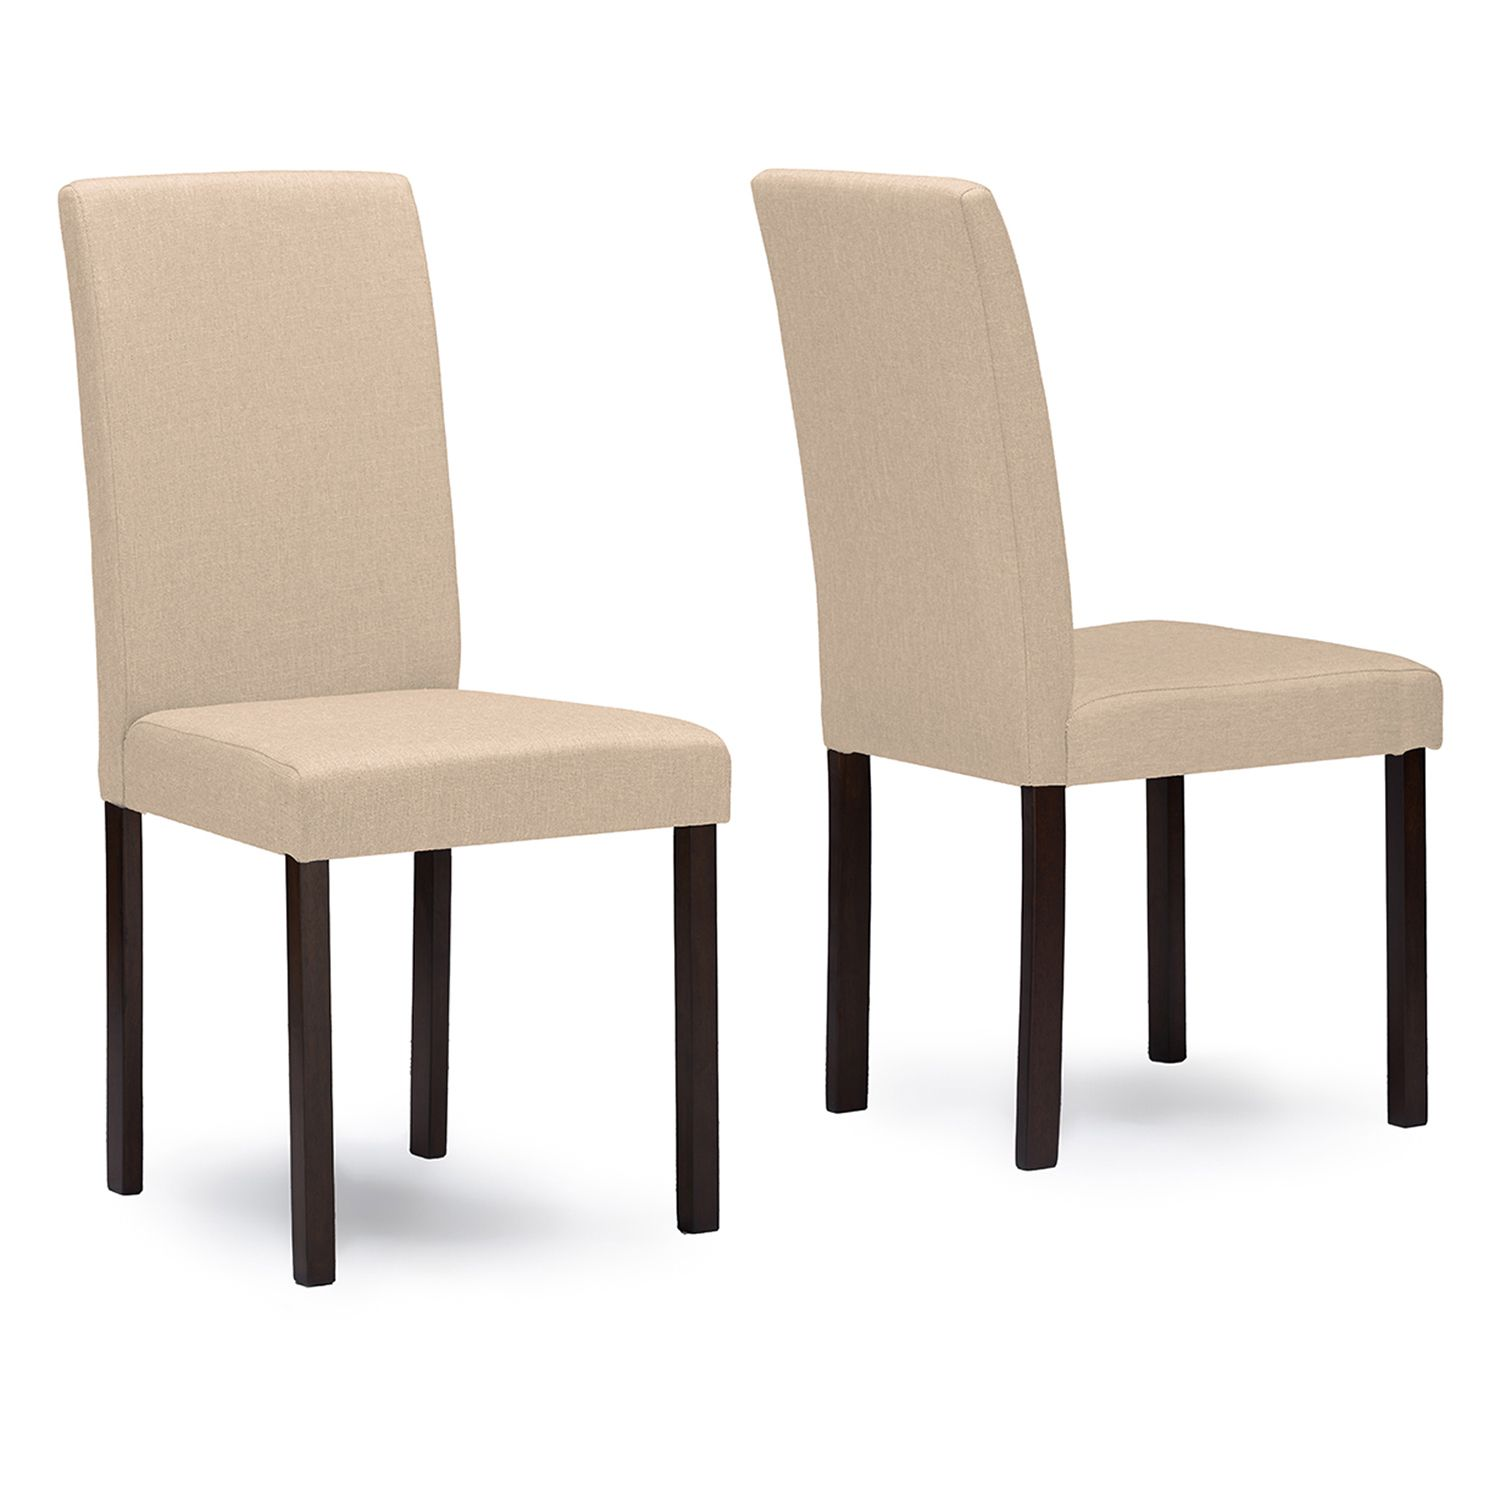 Baxton Studio Andrew Fabric Dining Chair 2 Piece Set